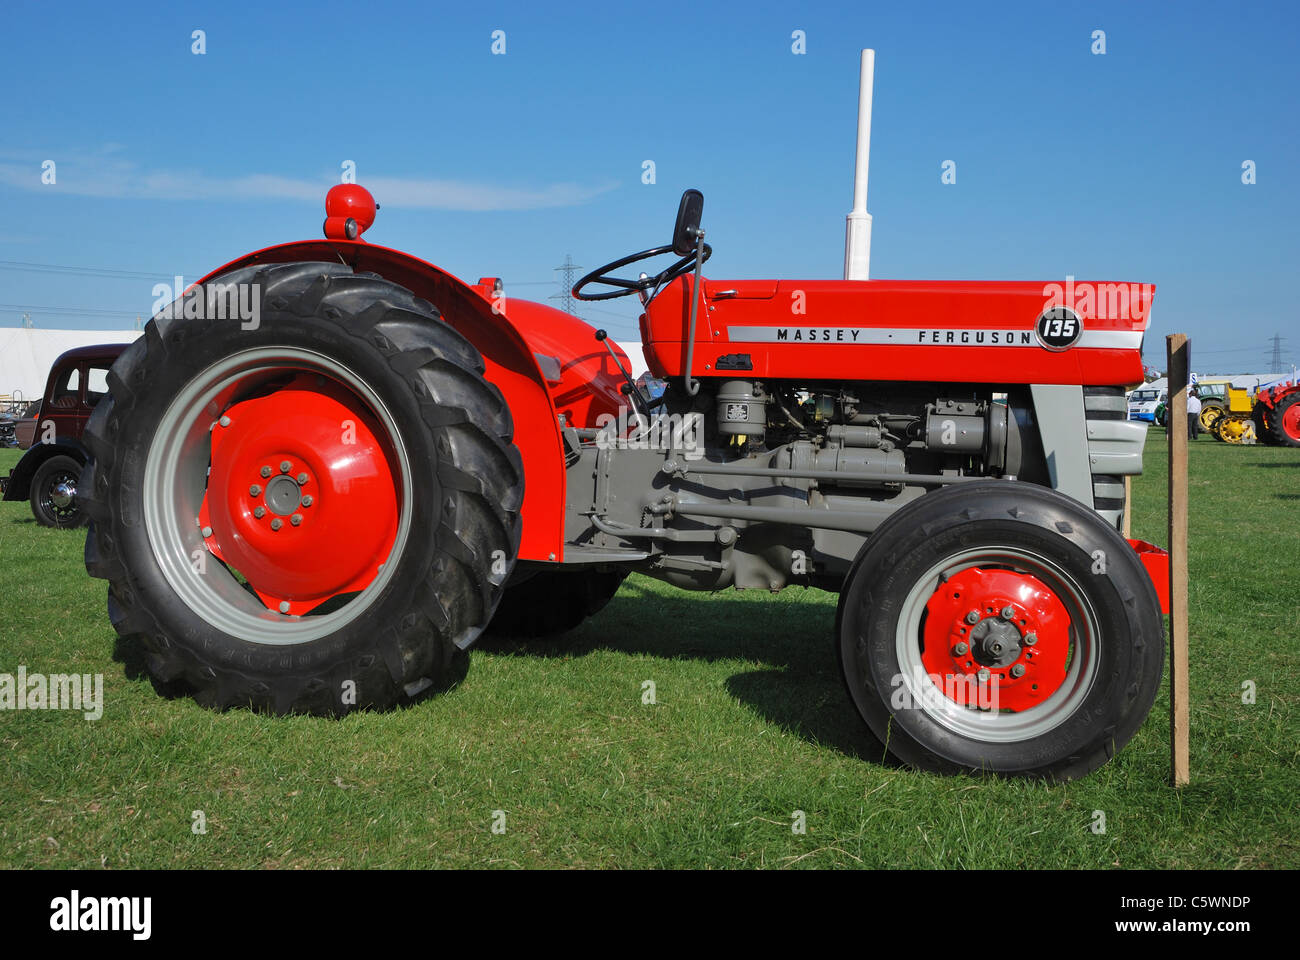 a 1965 massey ferguson 135 tractor lincolnshire england. Black Bedroom Furniture Sets. Home Design Ideas